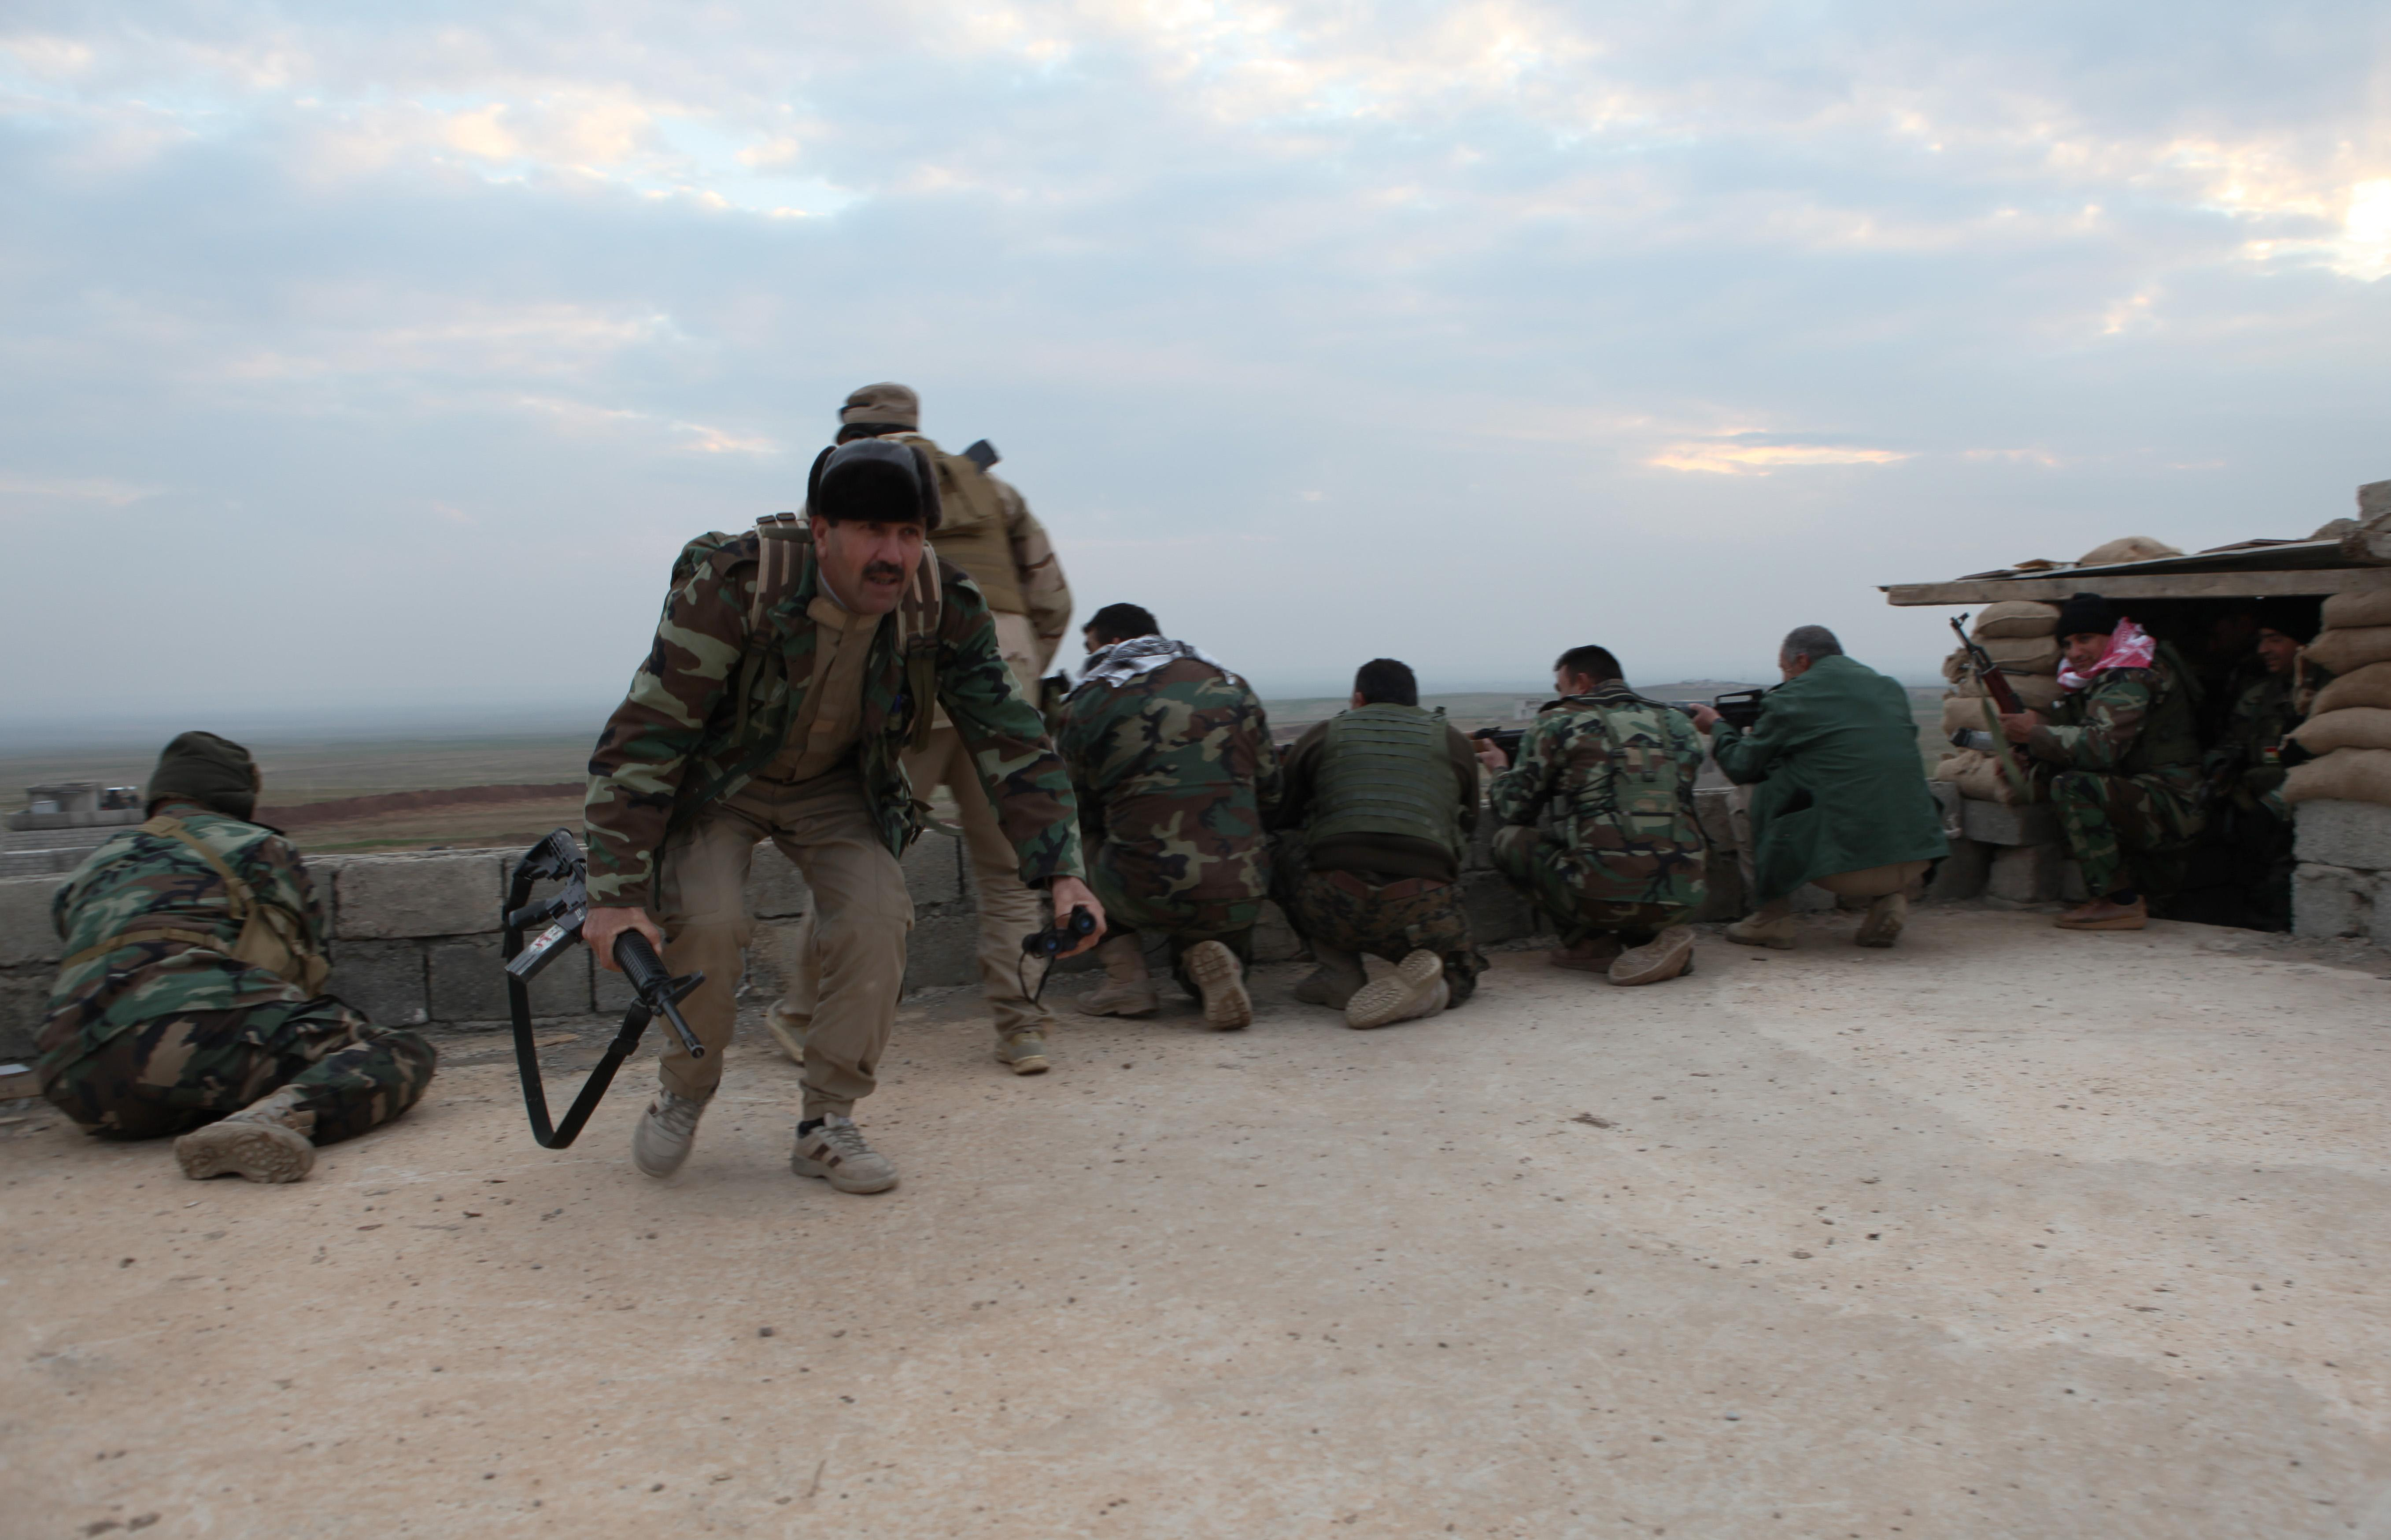 Kurds advance against IS group in Syria, Iraq